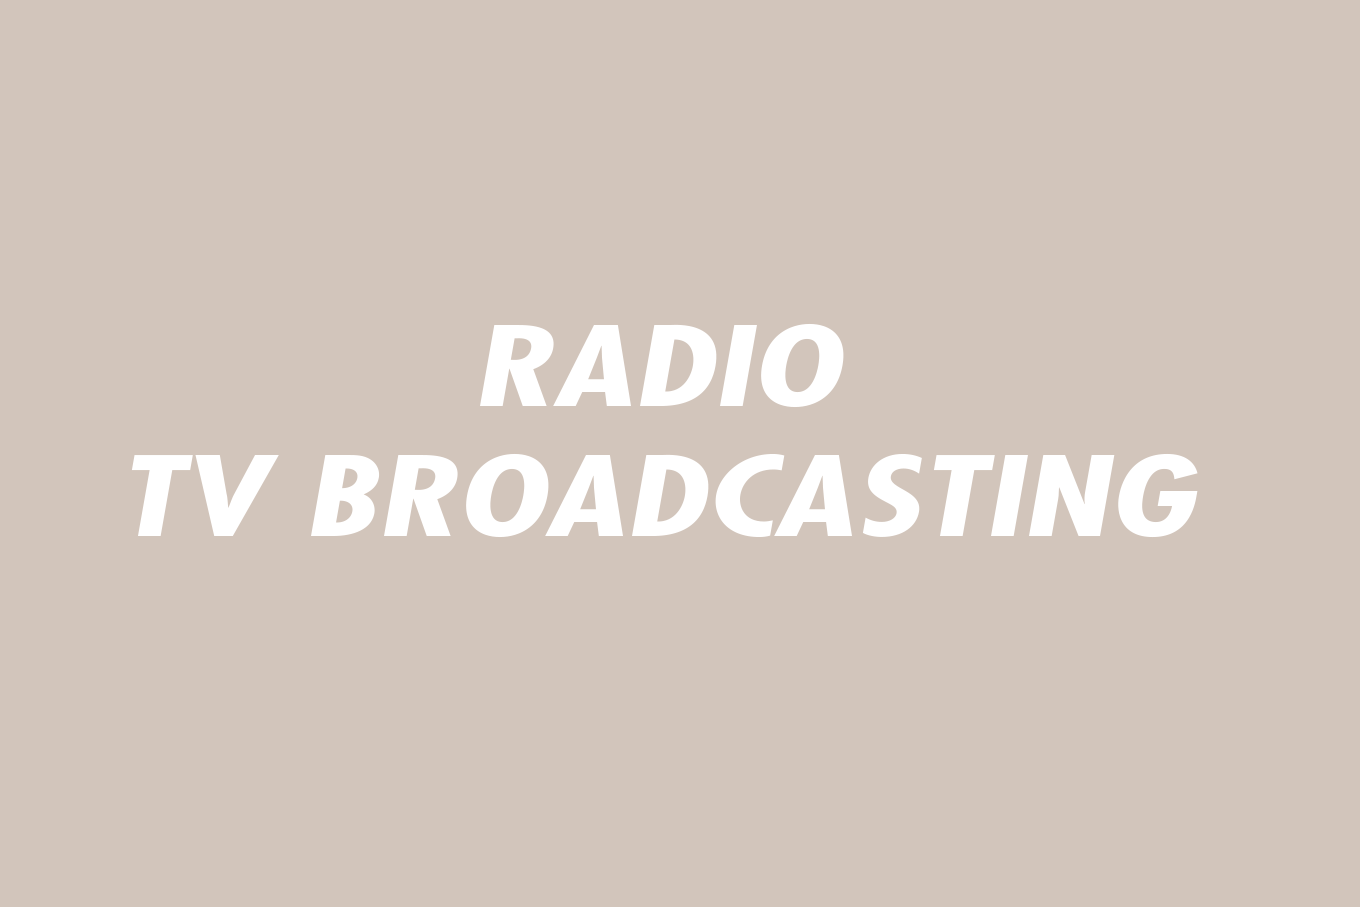 00 Radio - Tv Broadcasting